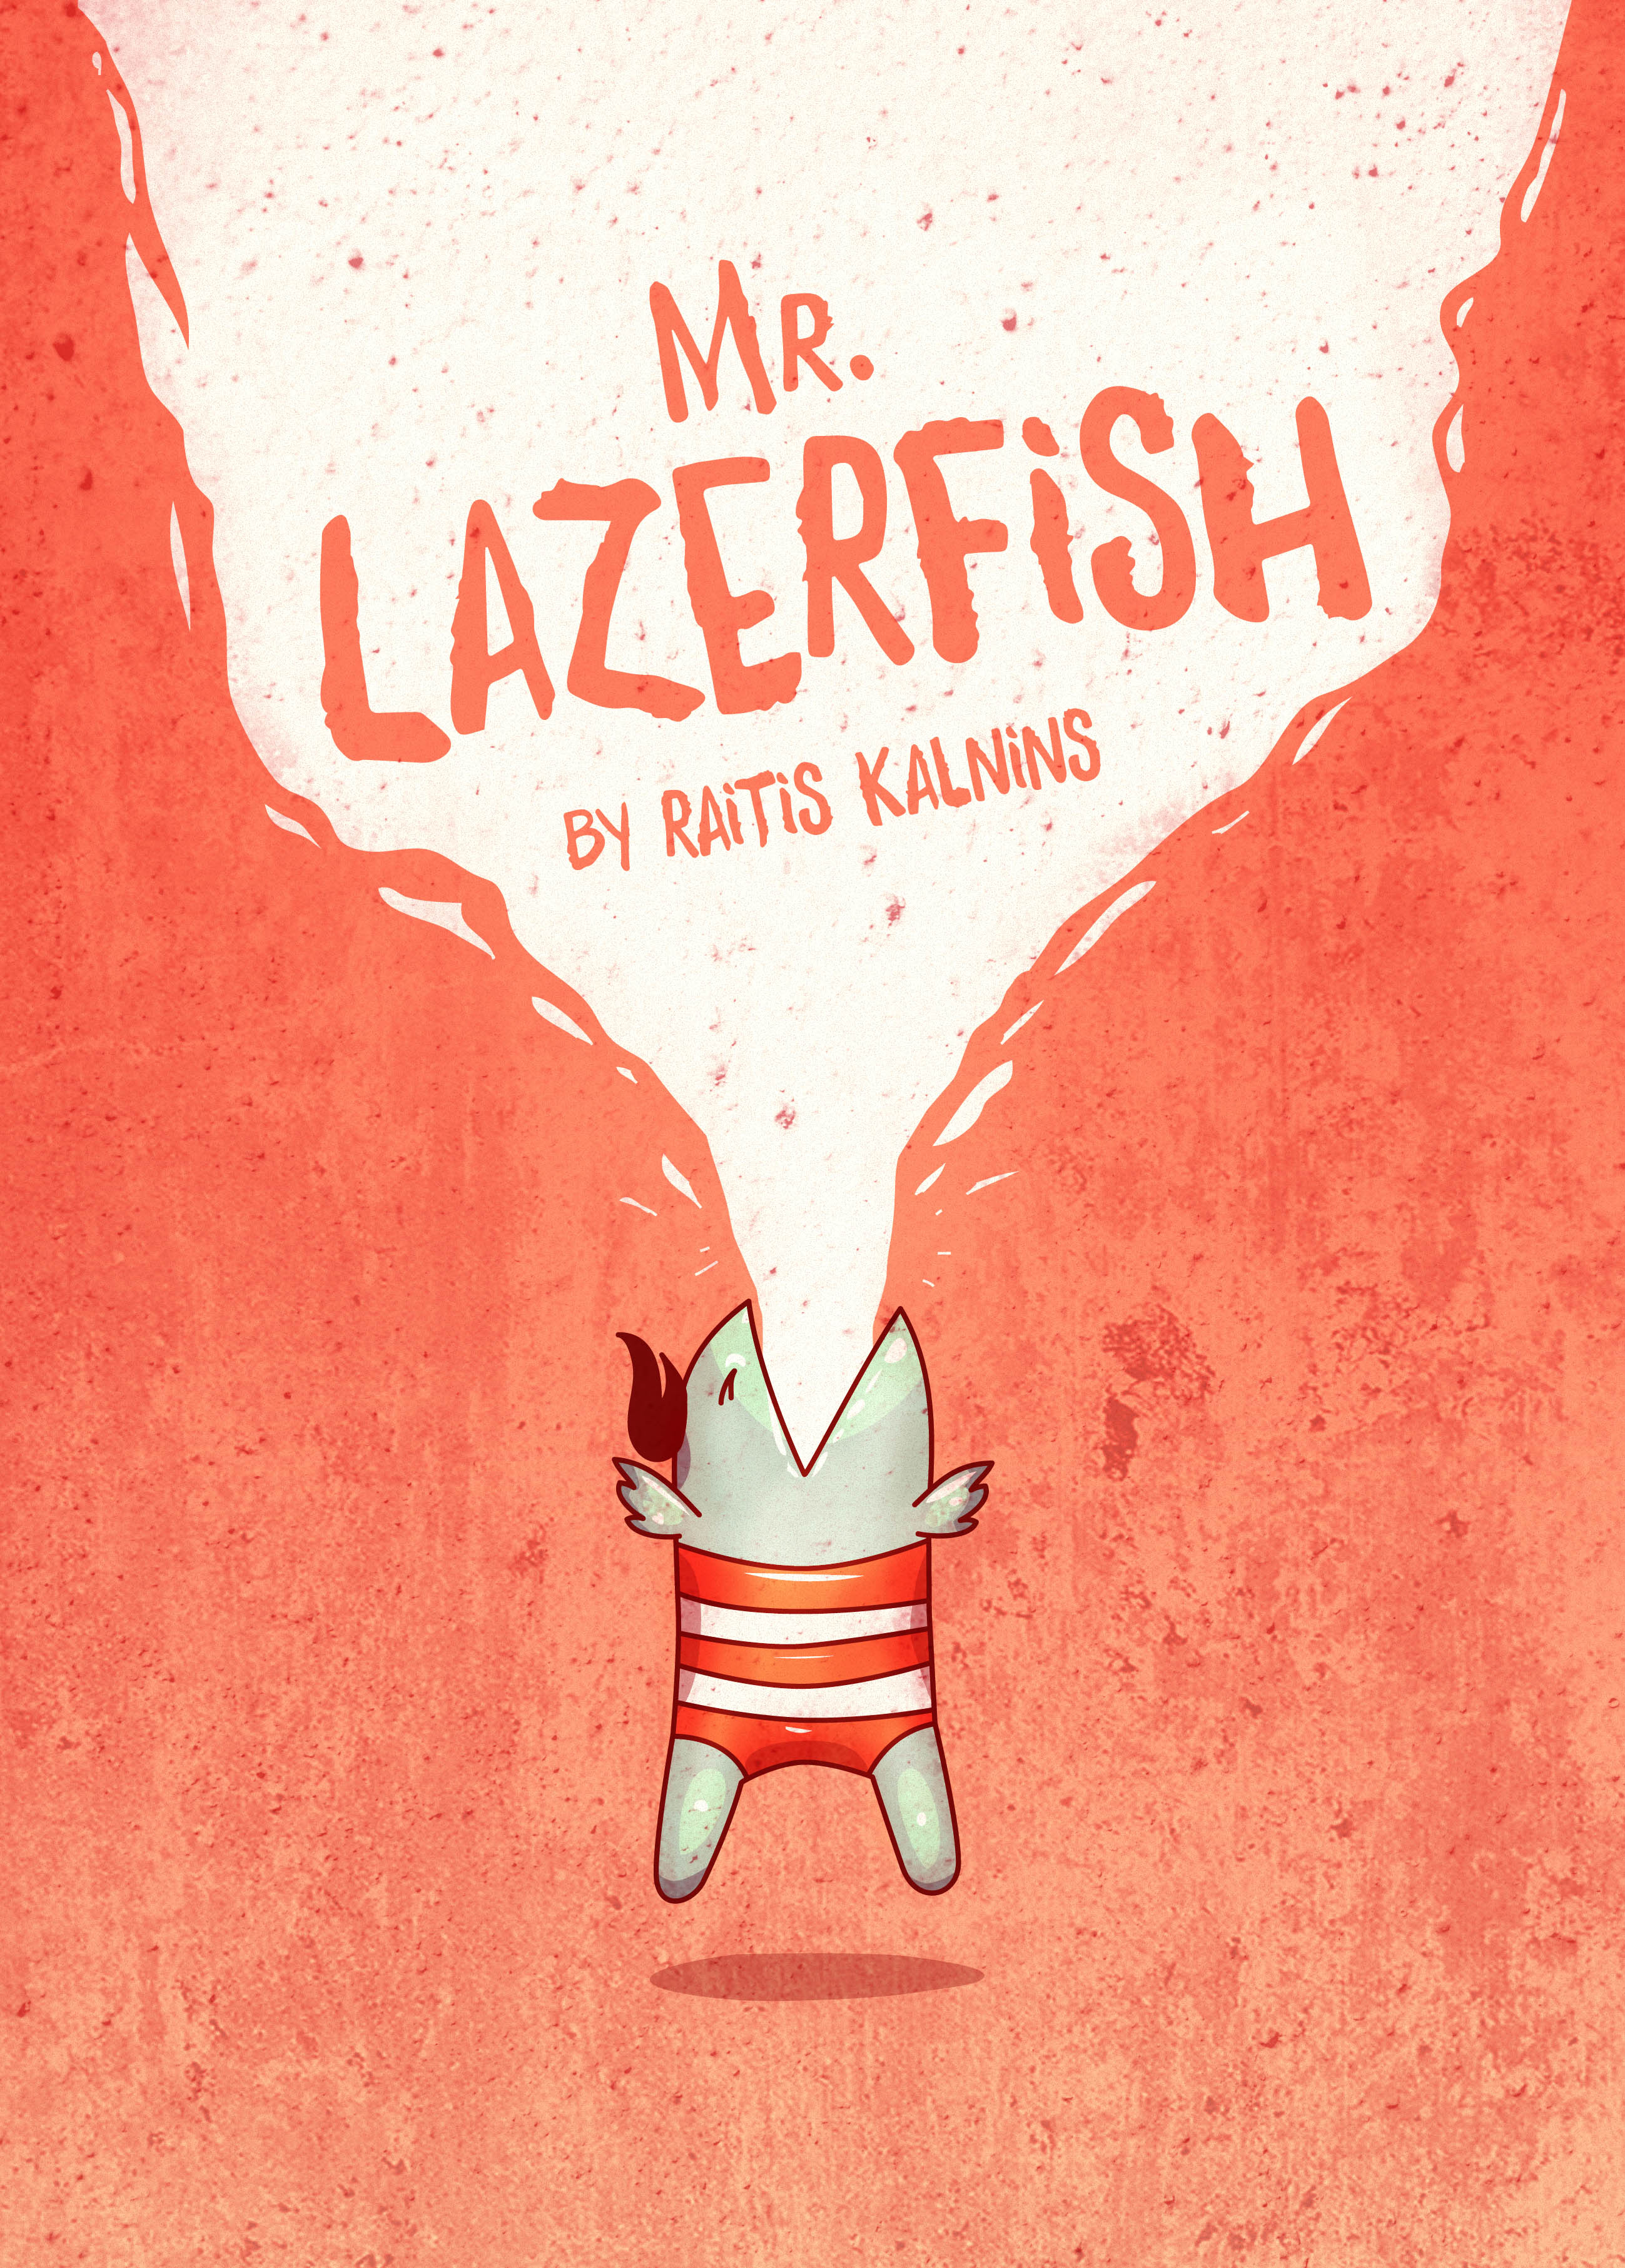 Mr. Lazerfish comic cover